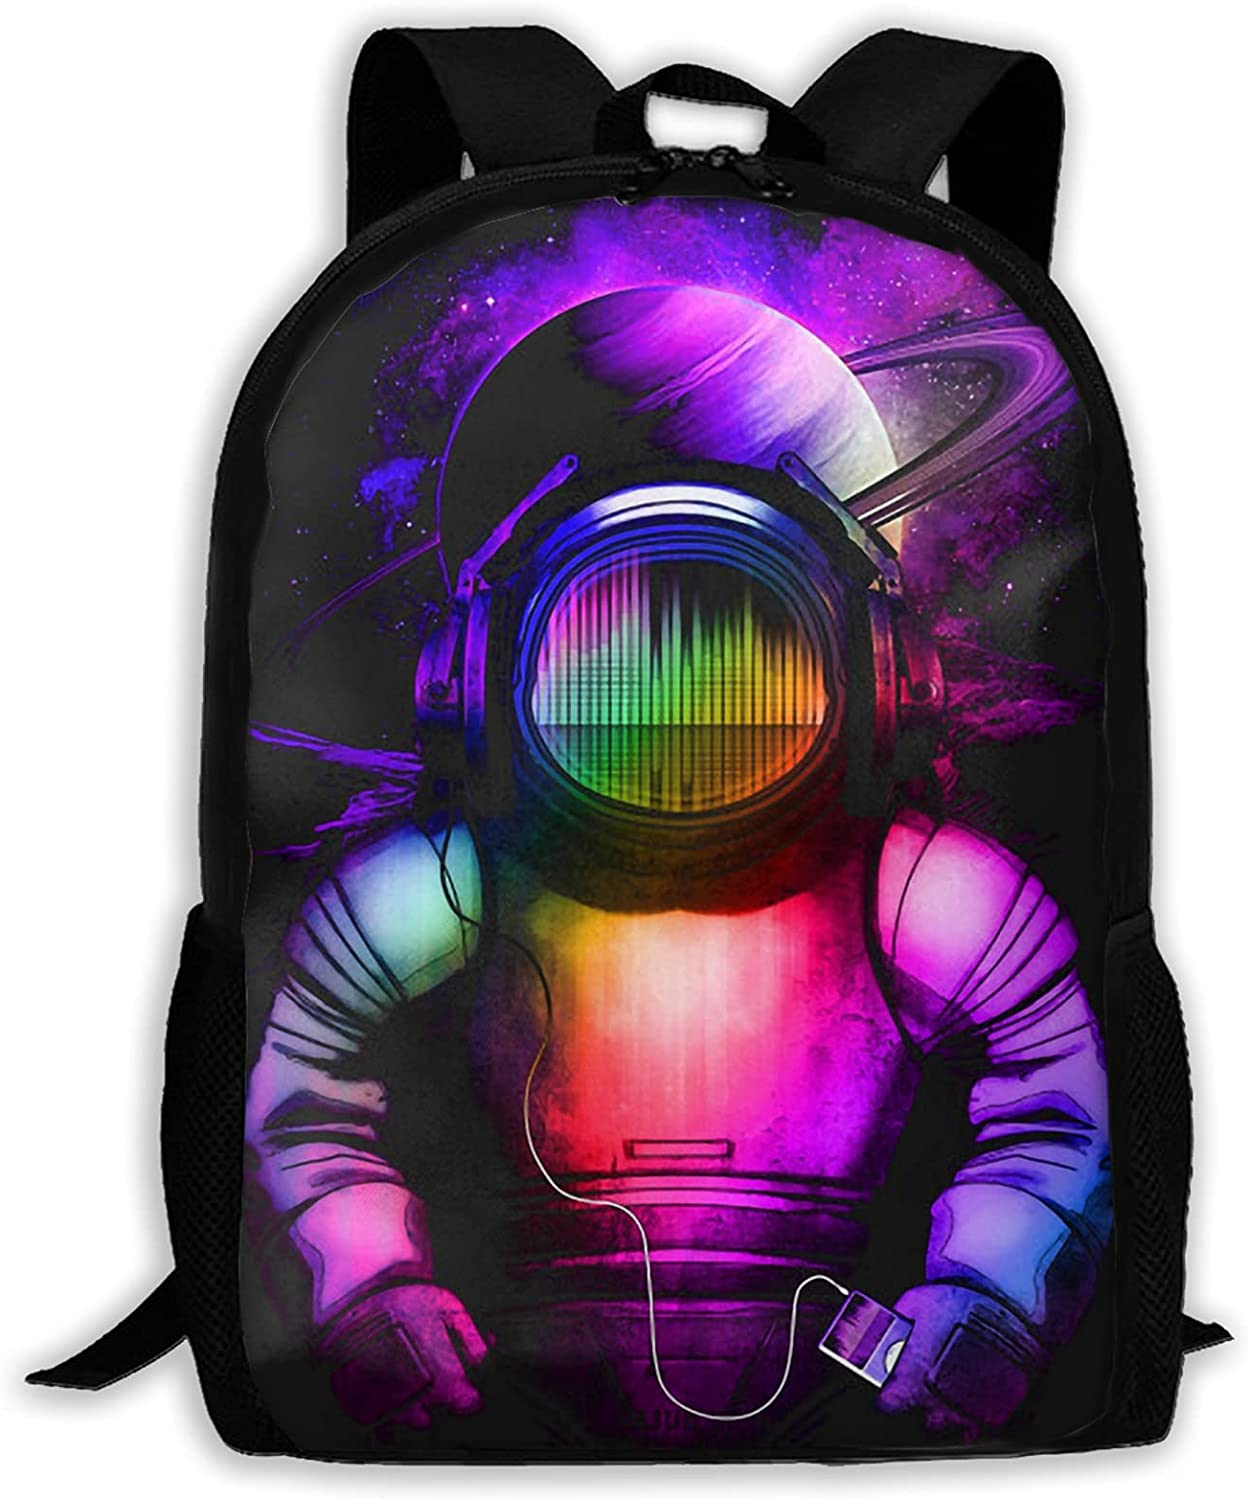 Astronaut Printed Backpack Teen Boys Free shipping 1 Laptop Free shipping New Girls And